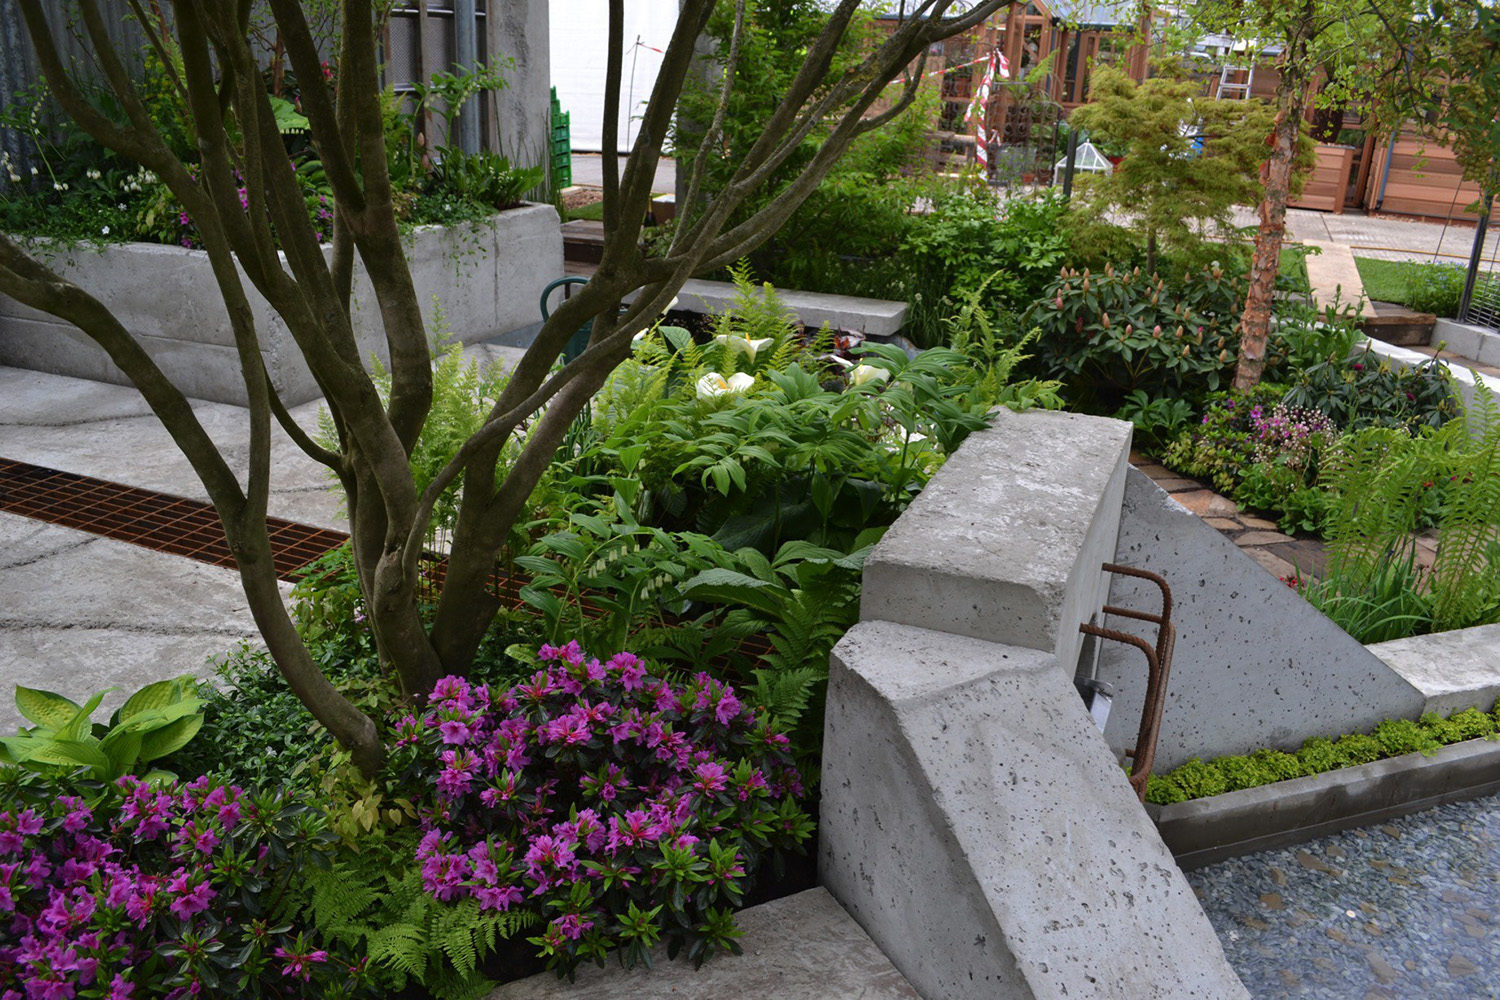 RHS Chelsea Flower Show 2013 - The Wasteland